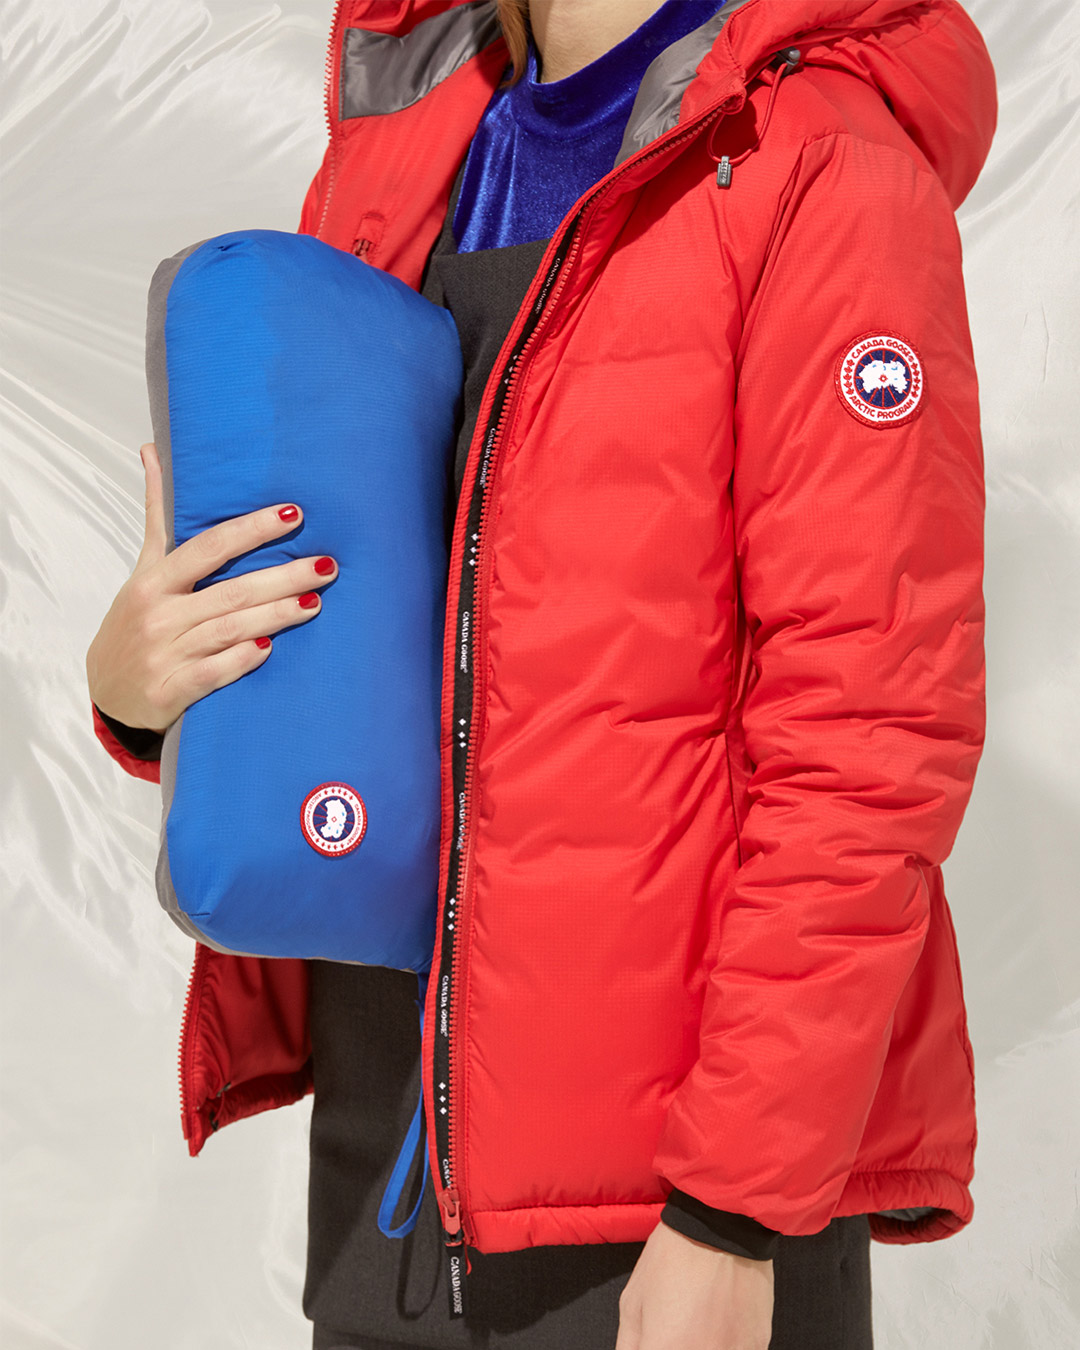 CanadaGoose_02_0824_optim